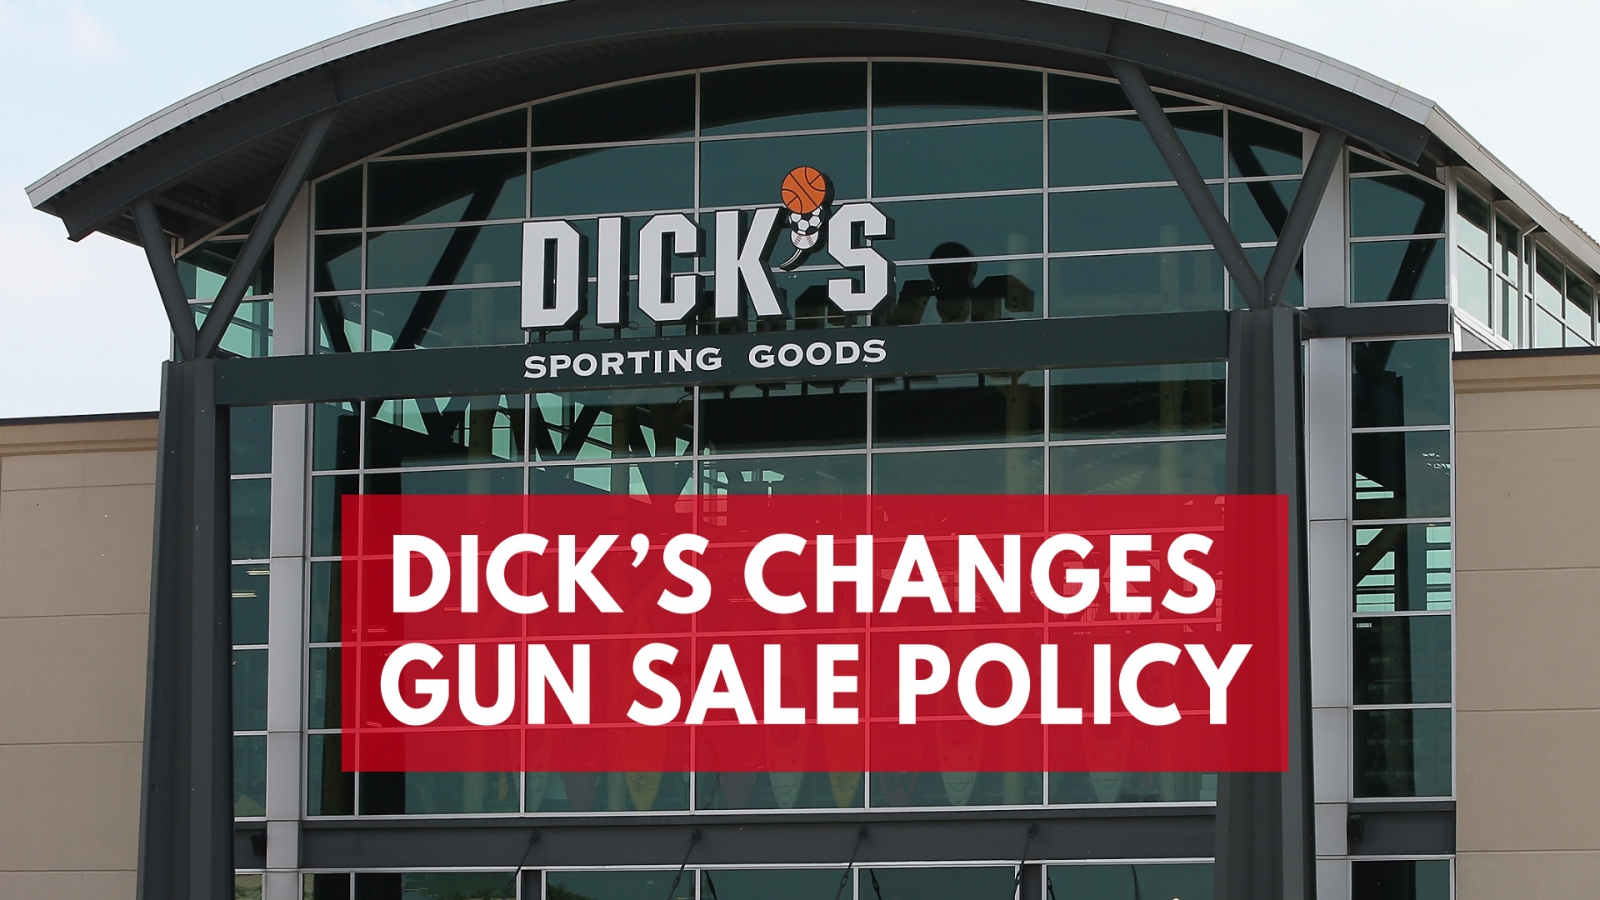 dicks-sporting-goods-announces-gun-sale-policy-changes-after-parkland-shooting